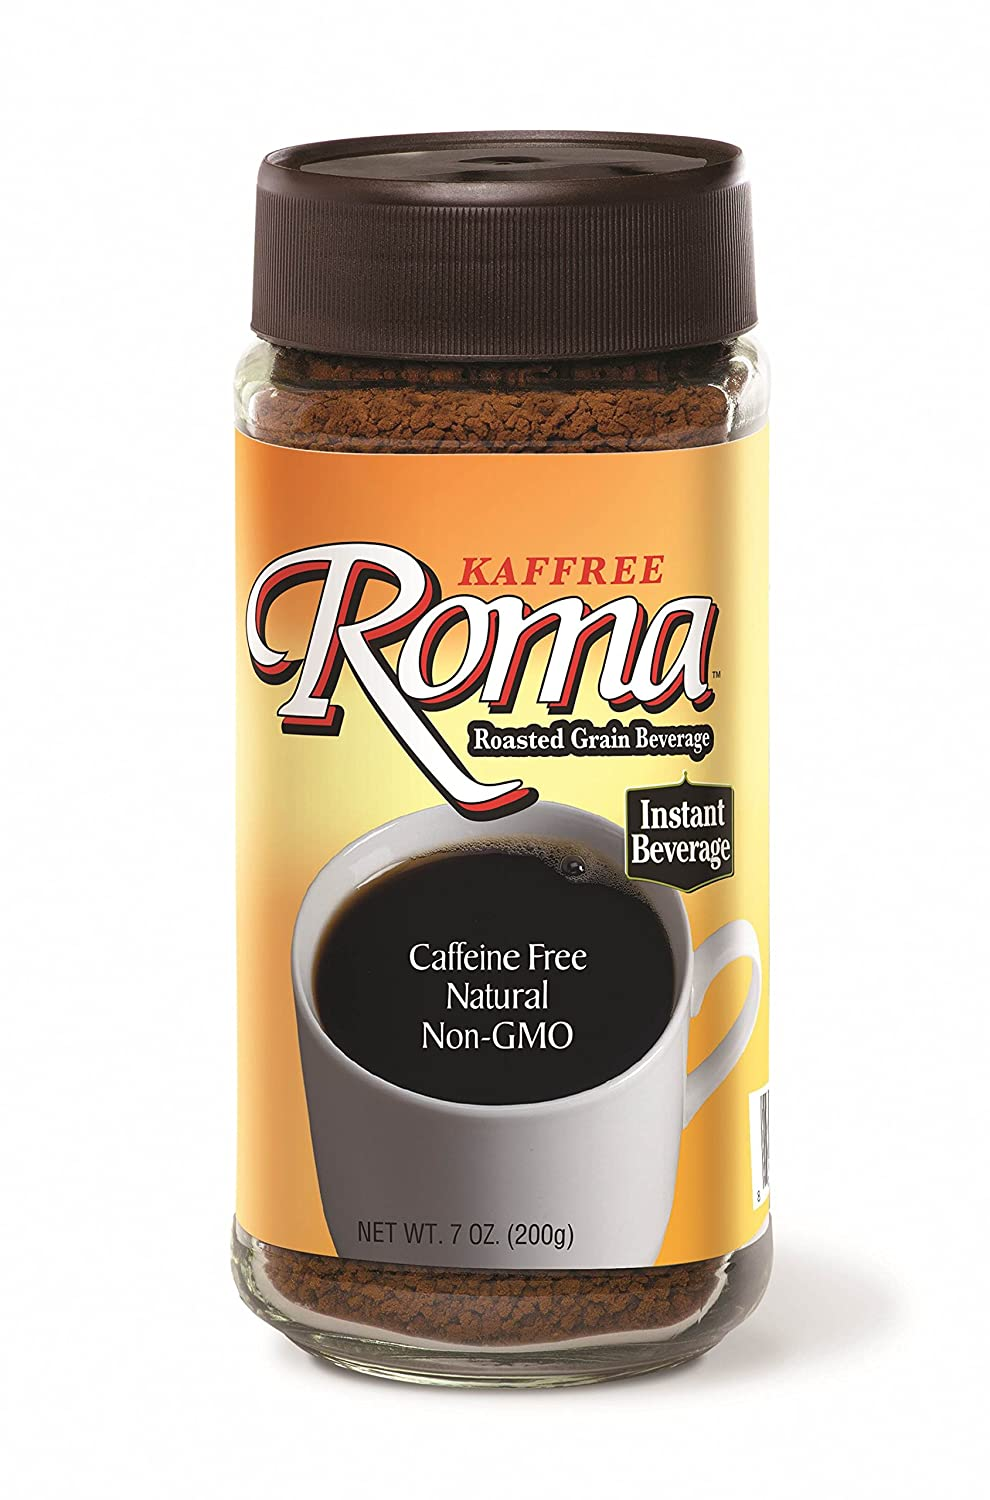 Kaffree Roma Bev Coffee Kaffree Roma (6 Pack)